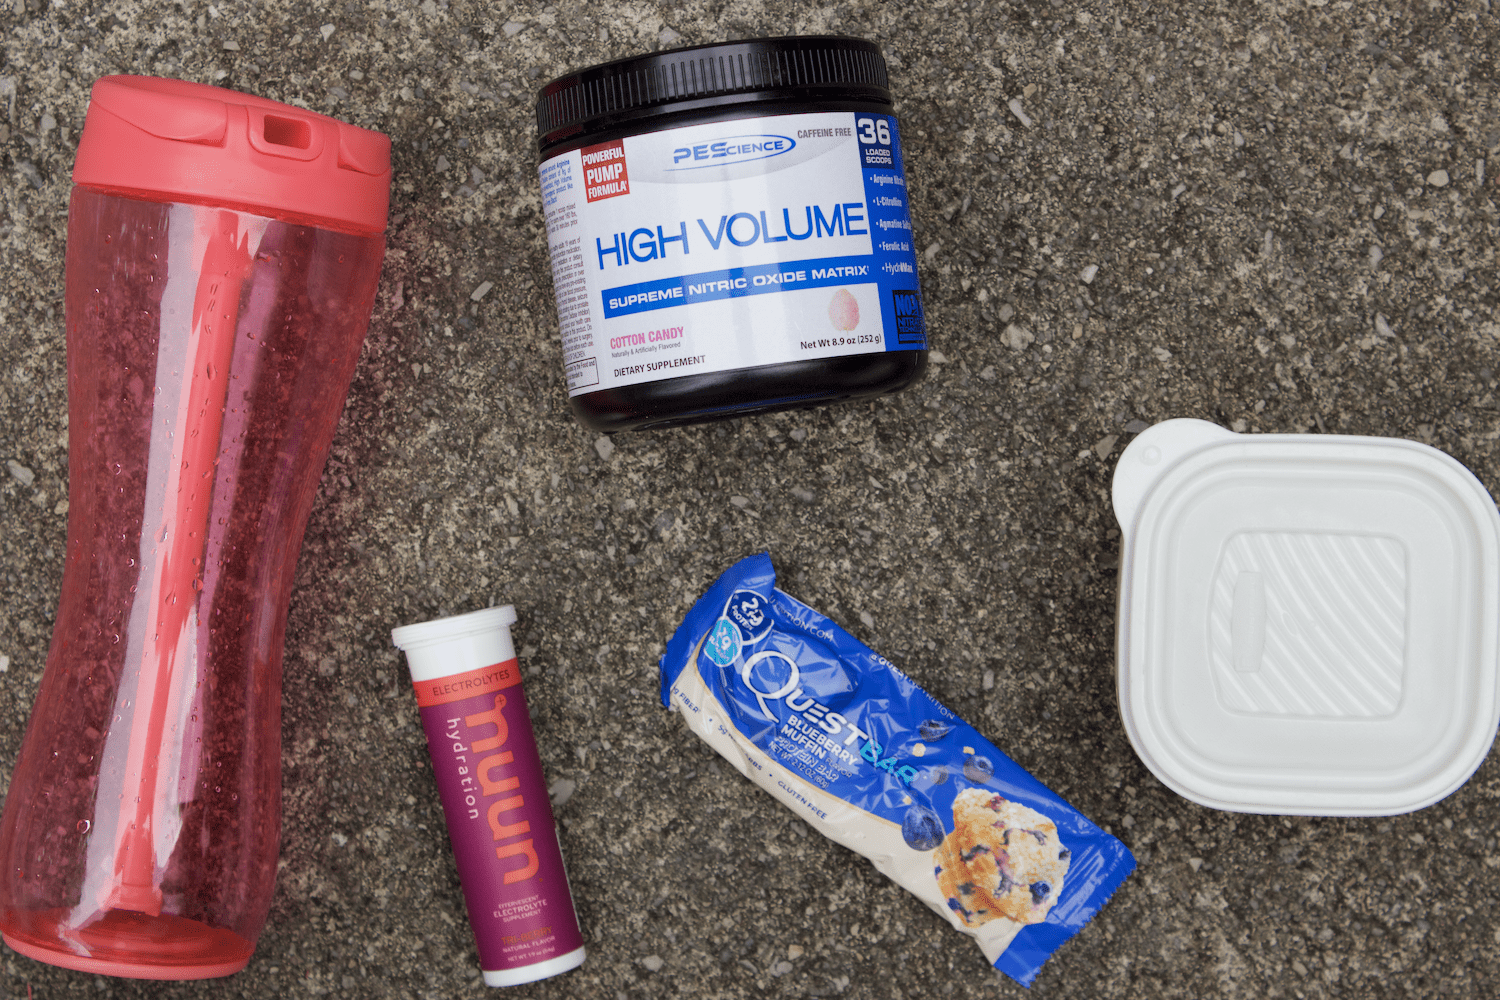 Get the most out of your workout by having everything you need in your gym bag. Here's what I keep in my gym bag to have the best workouts!